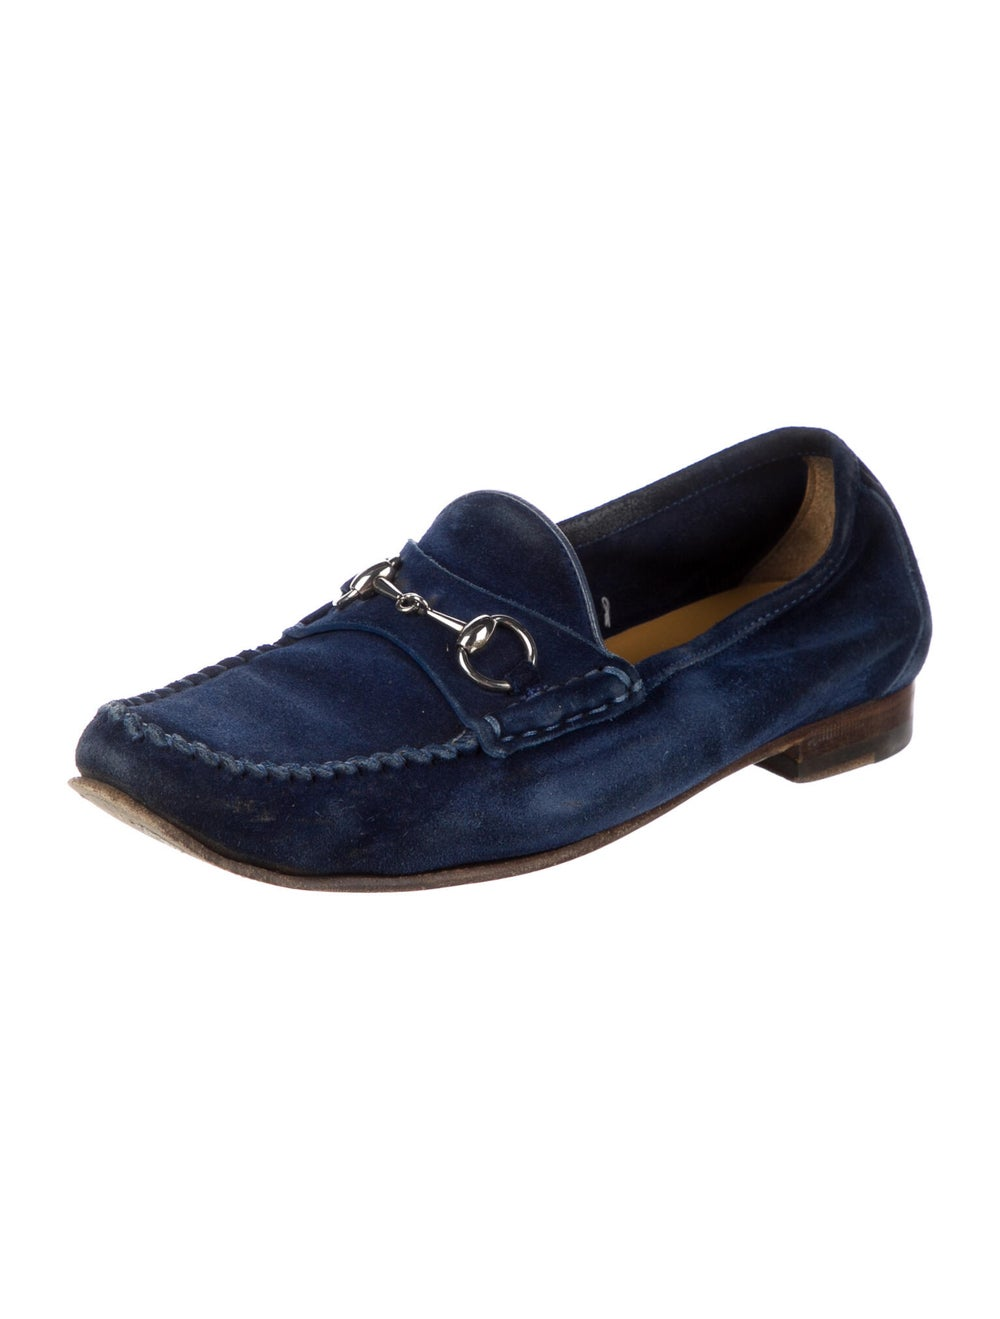 Gucci Suede Loafers Blue - image 2